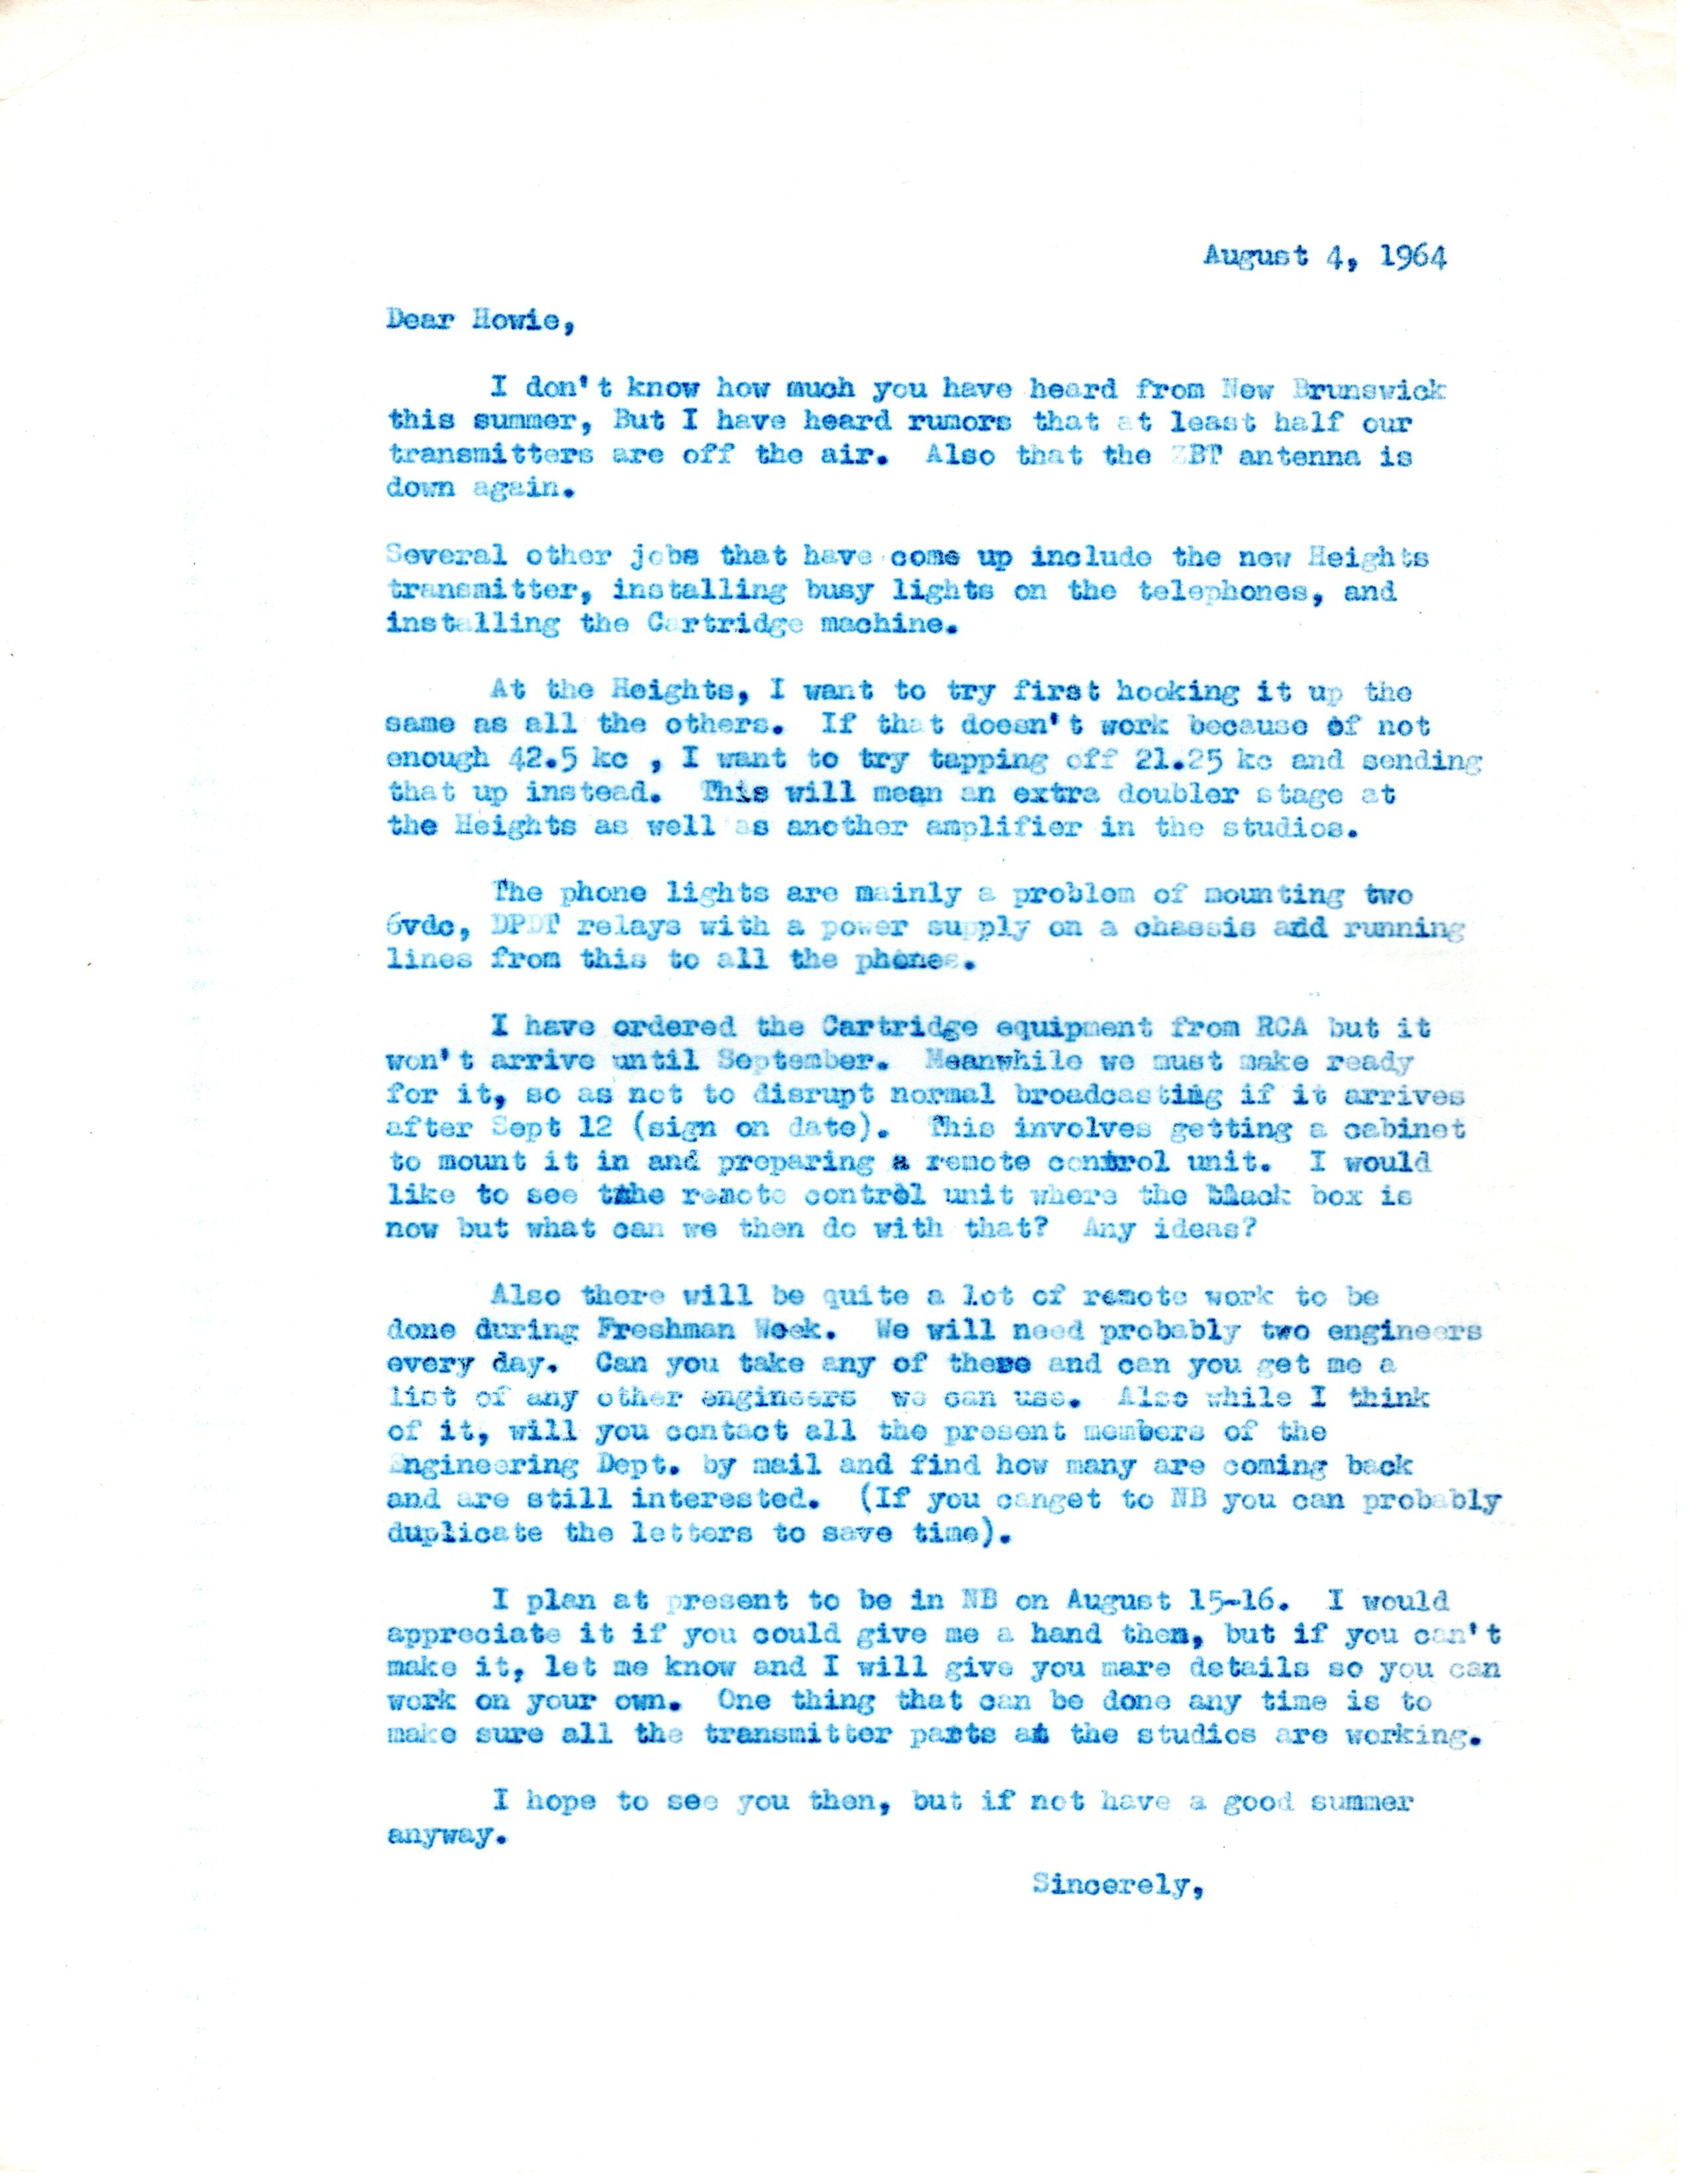 1964 - Notes on keeping the equipment running.